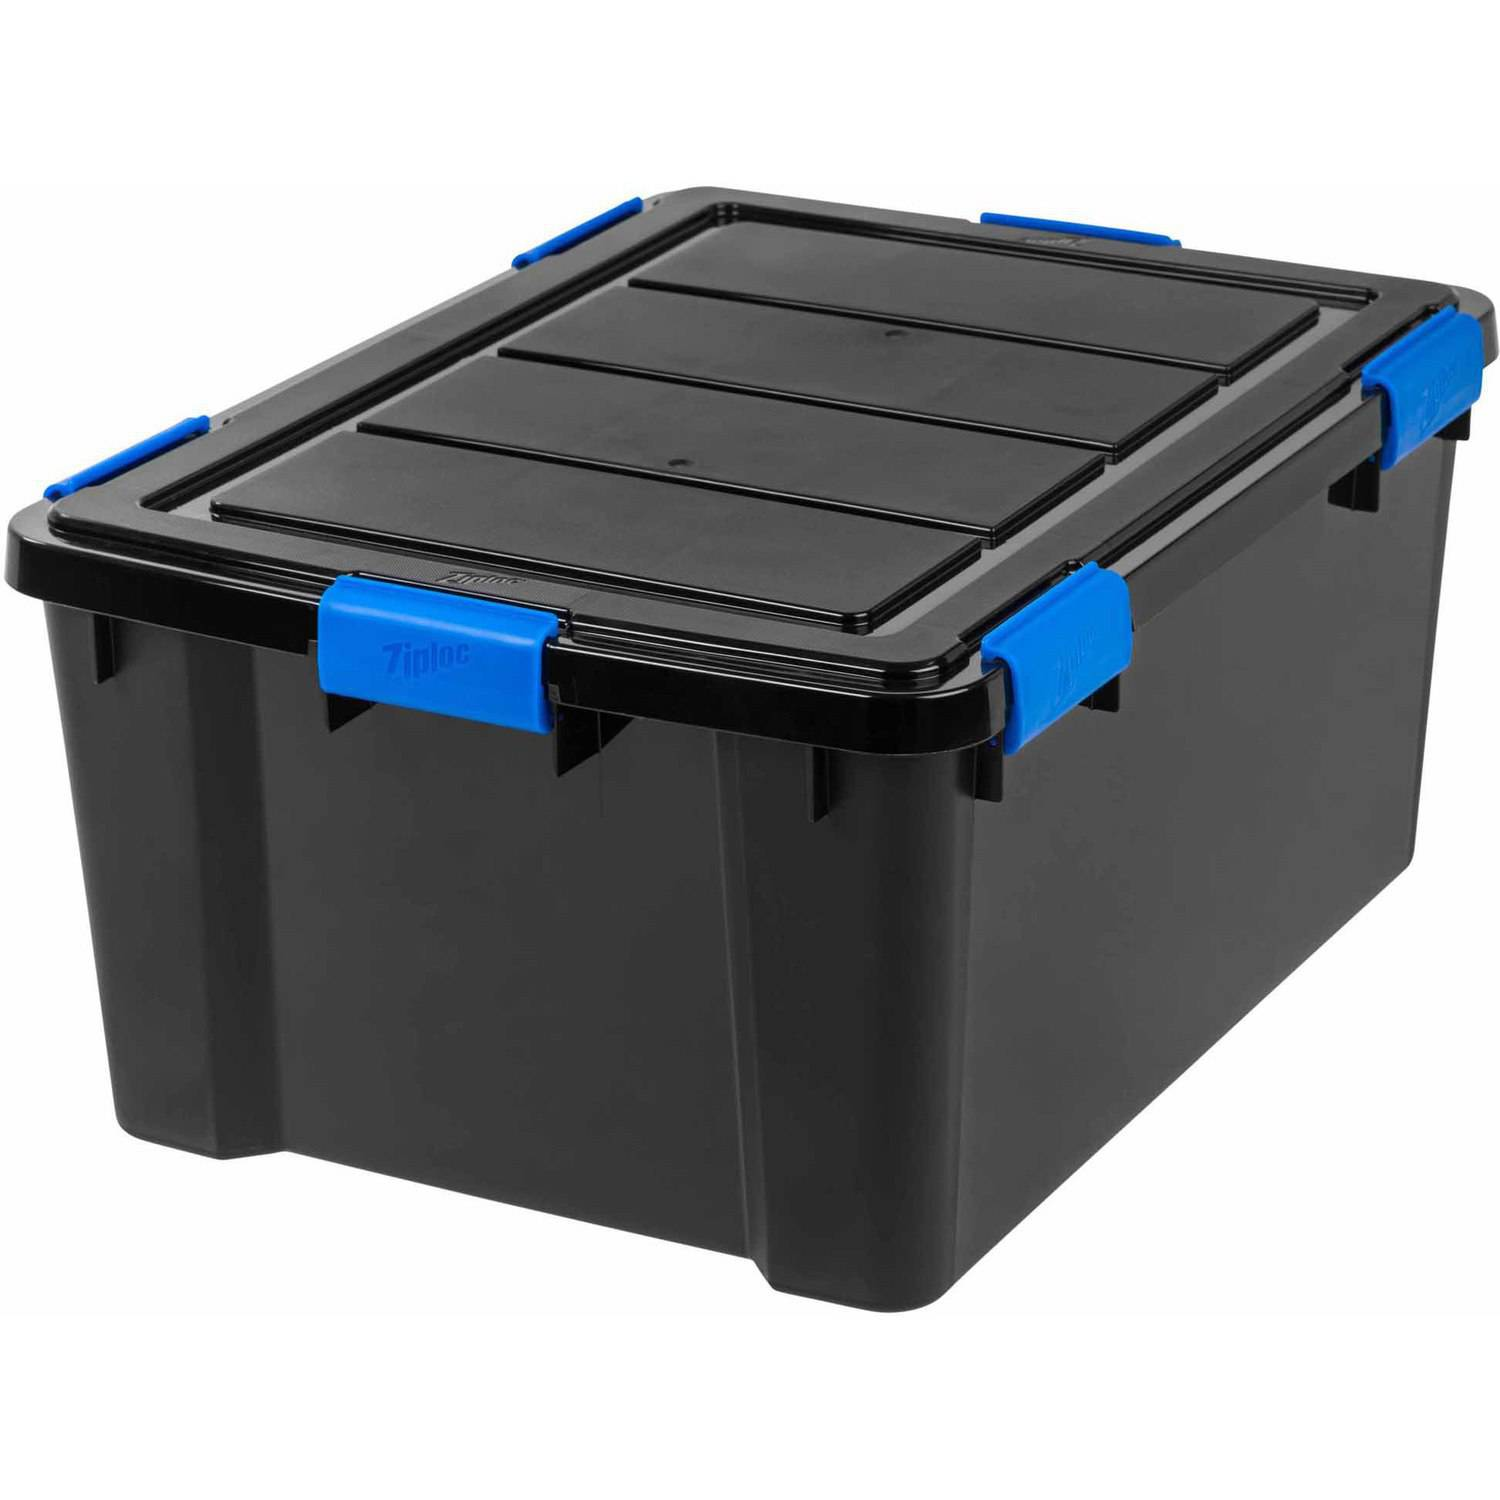 Ziploc 60 Qt Weathershield Storage Box Black Best Buy